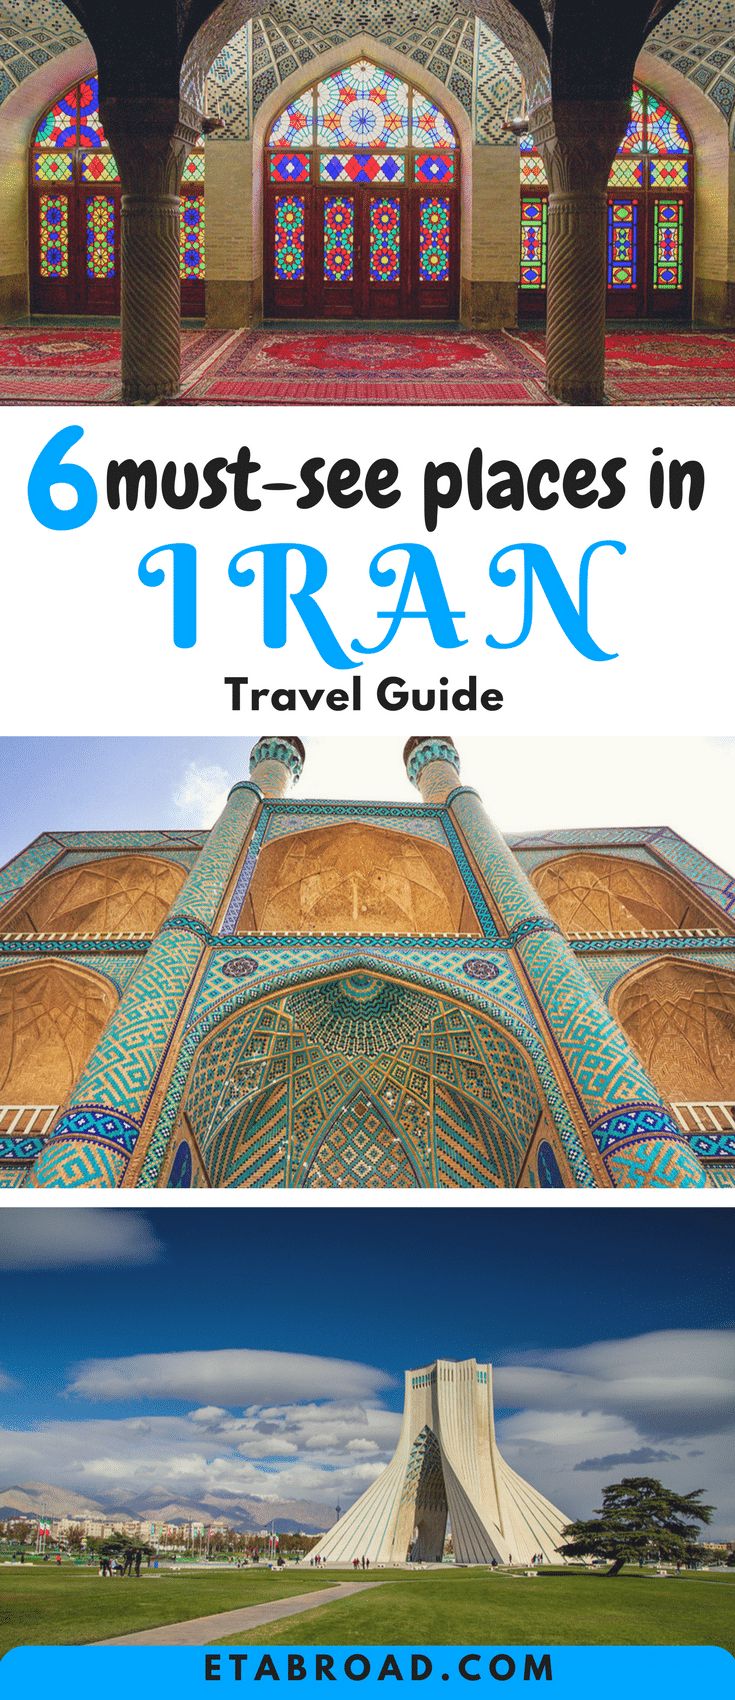 Iran Travel Guide| What to see in Iran | must-see places | Best thinks to see in Iran | Best of Iran